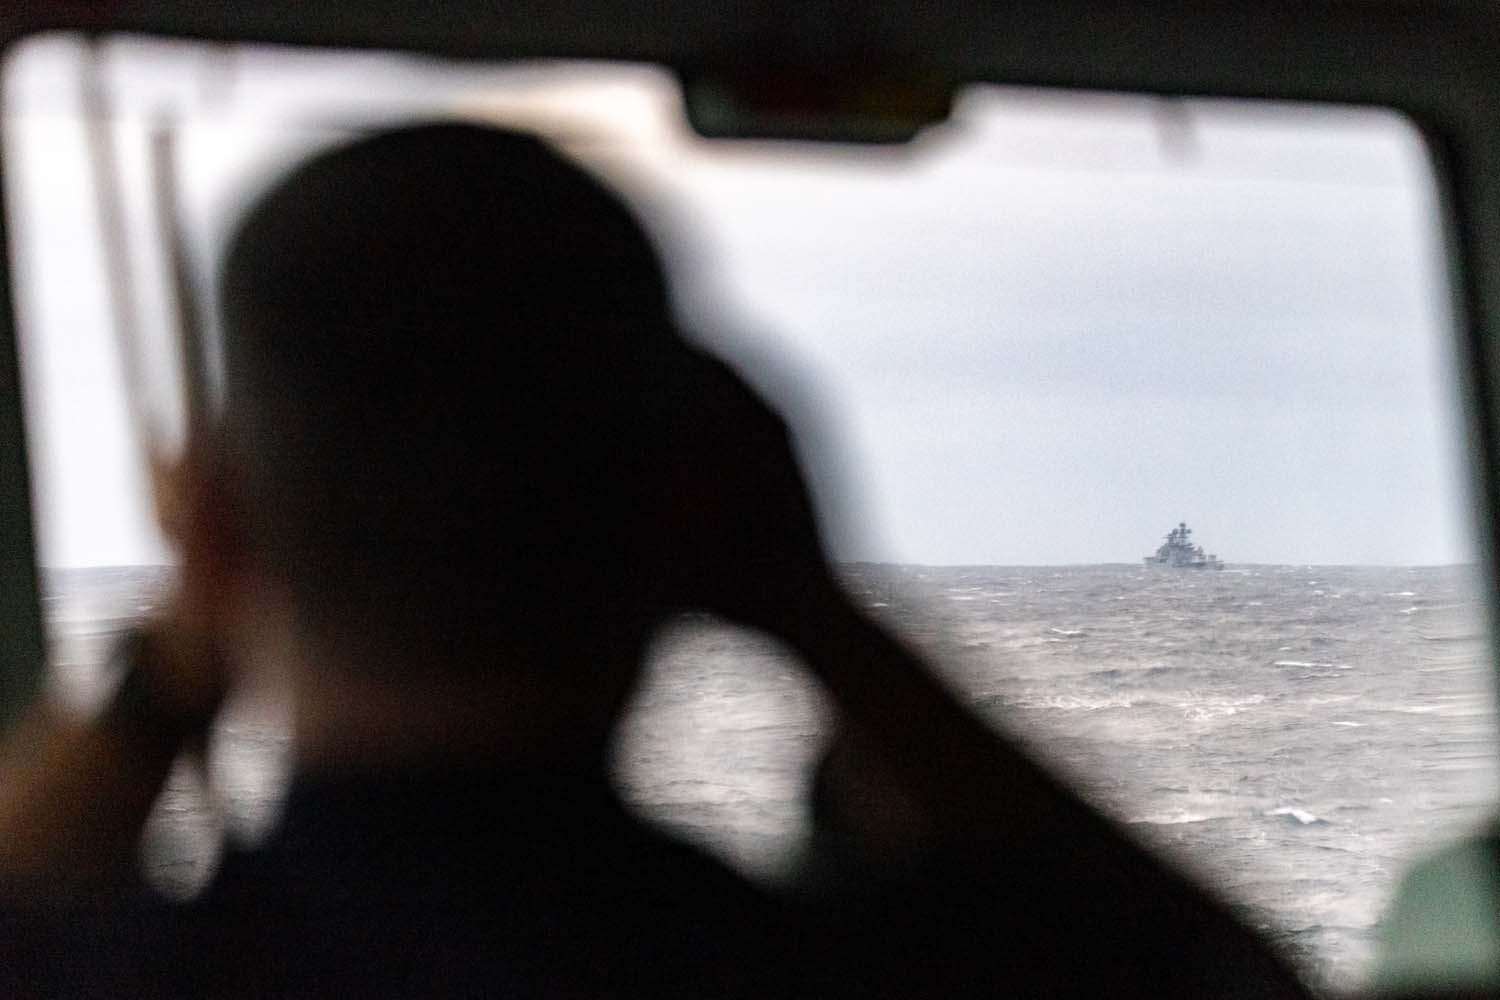 A sailor on board HMS Northumberland monitors the movement of Vice-Admiral Kulakov